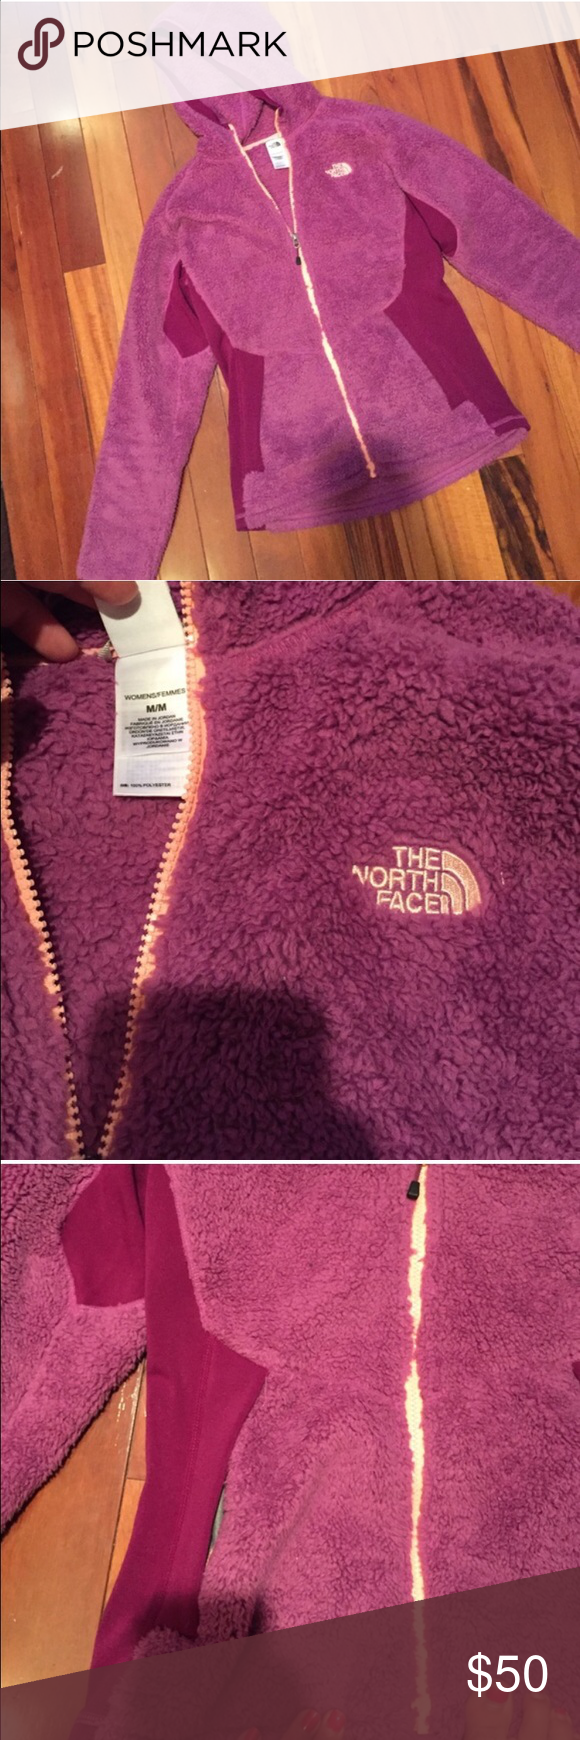 North Face woman's fleece jacket | D, Coats and Fleece jackets